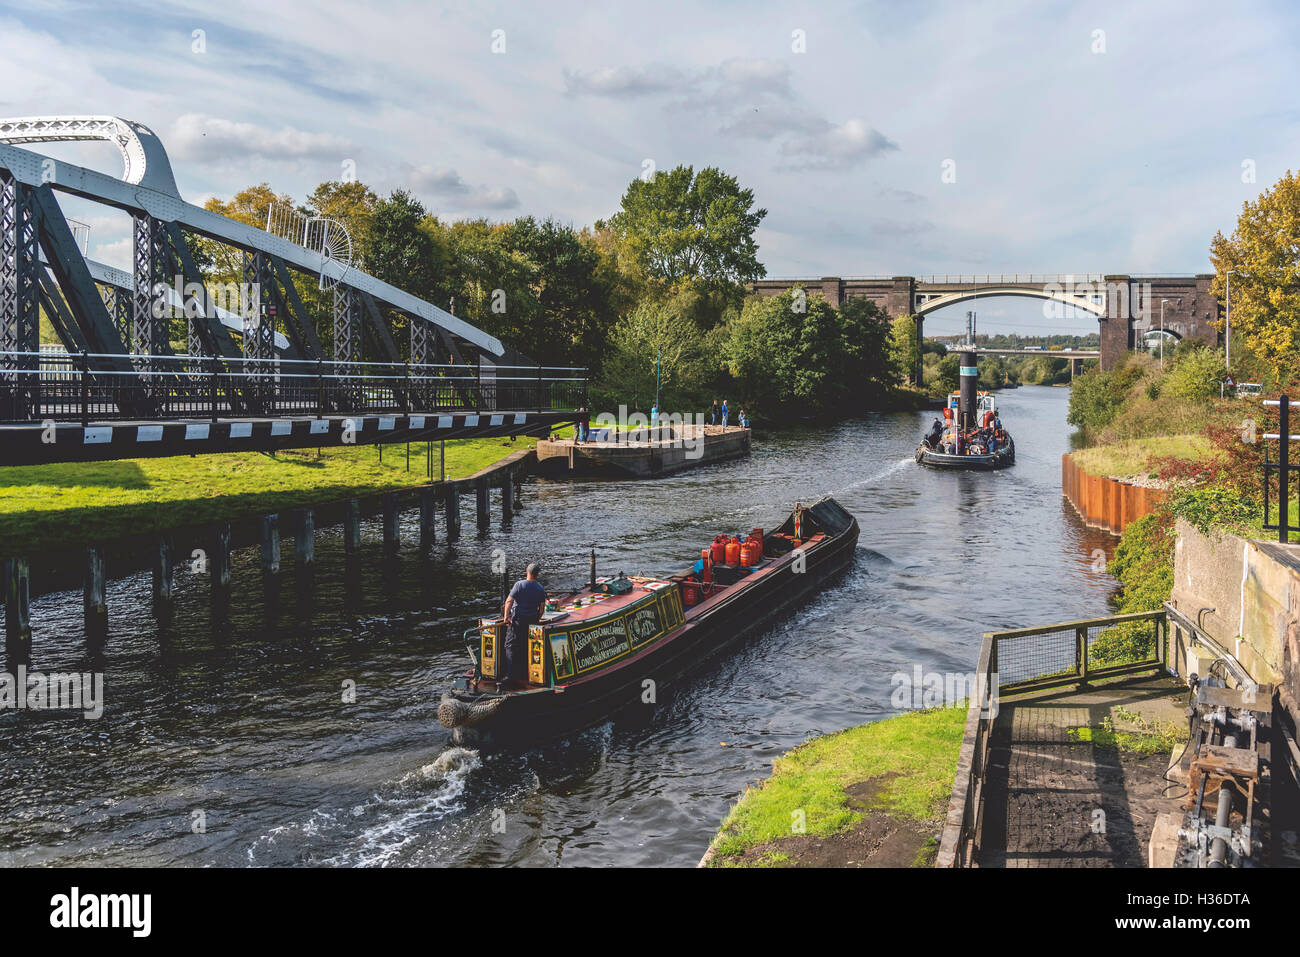 Steam tug Kerne pictured in the river Weaver at Sutton Weaver. West Cheshire. North West England. - Stock Image